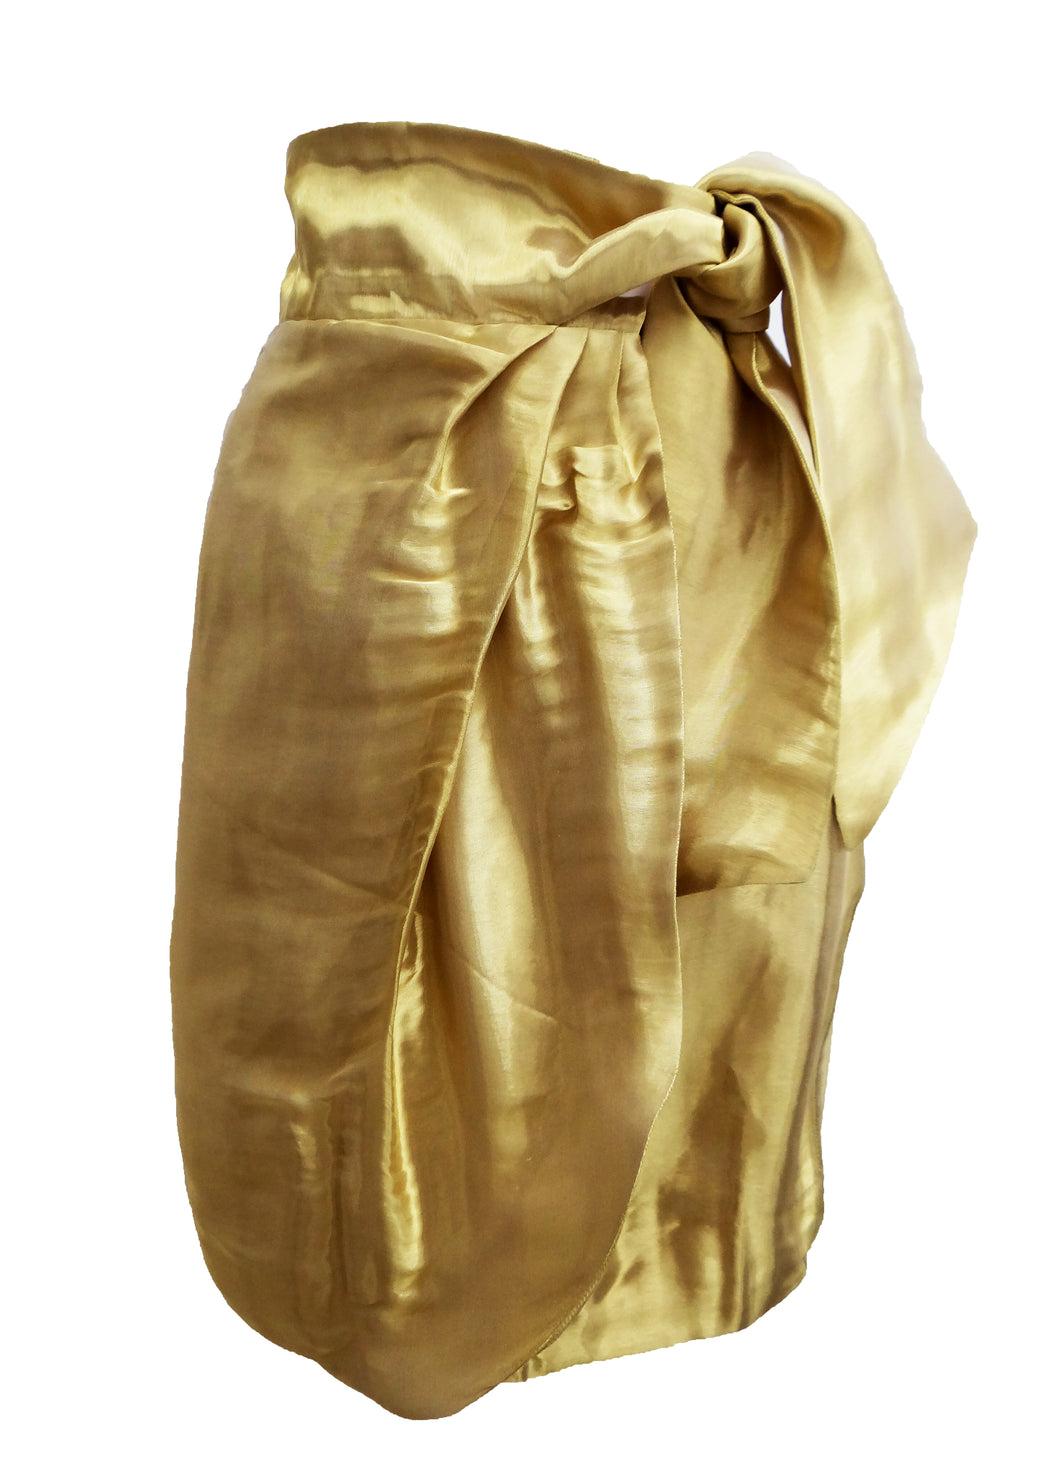 Issa Liquid Gold Organza Wrap Skirt, UK8-10